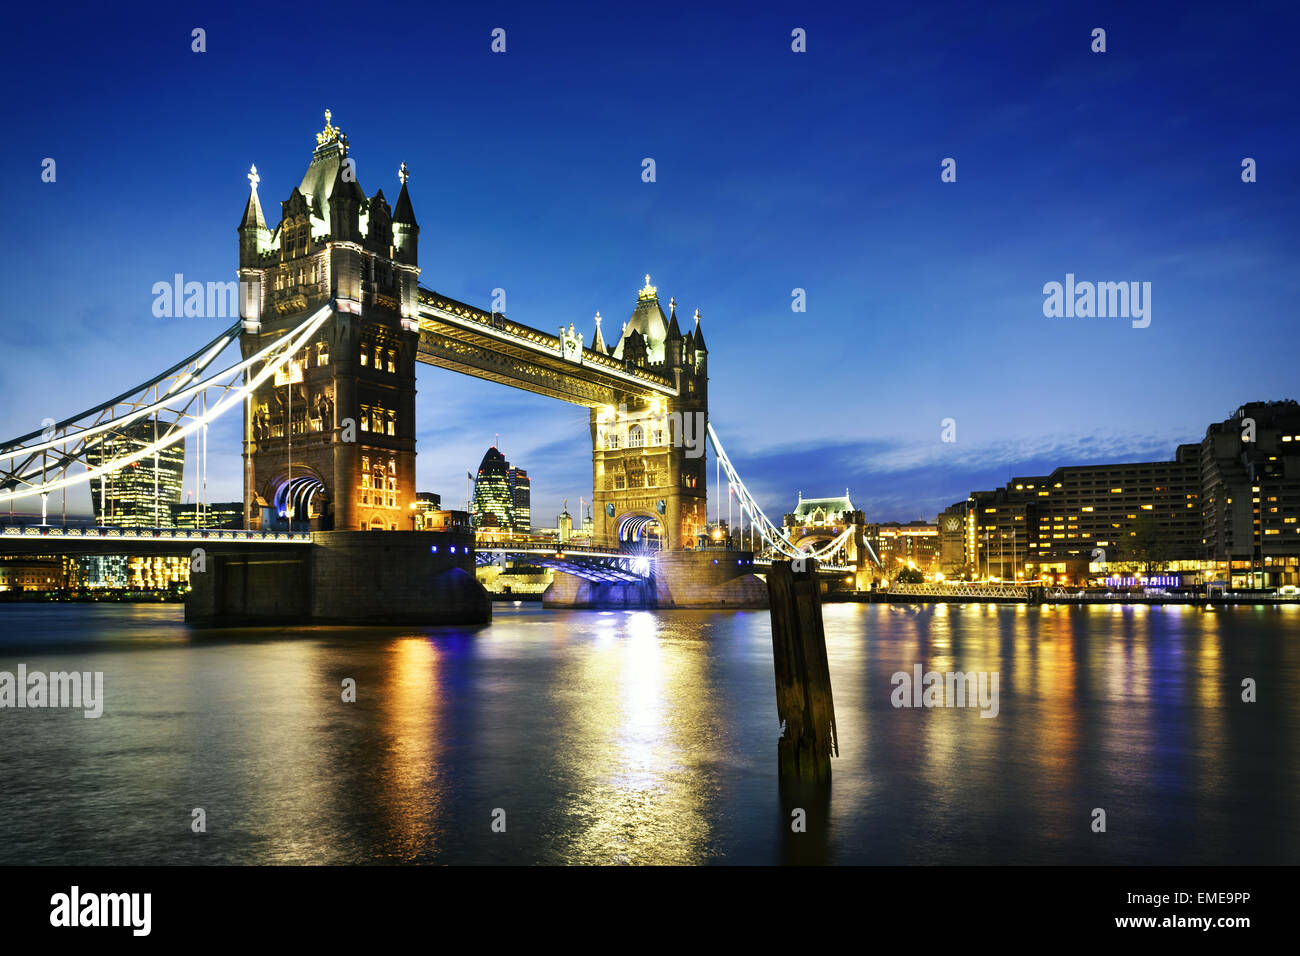 Famous Tower Bridge by night London, England - Stock Image